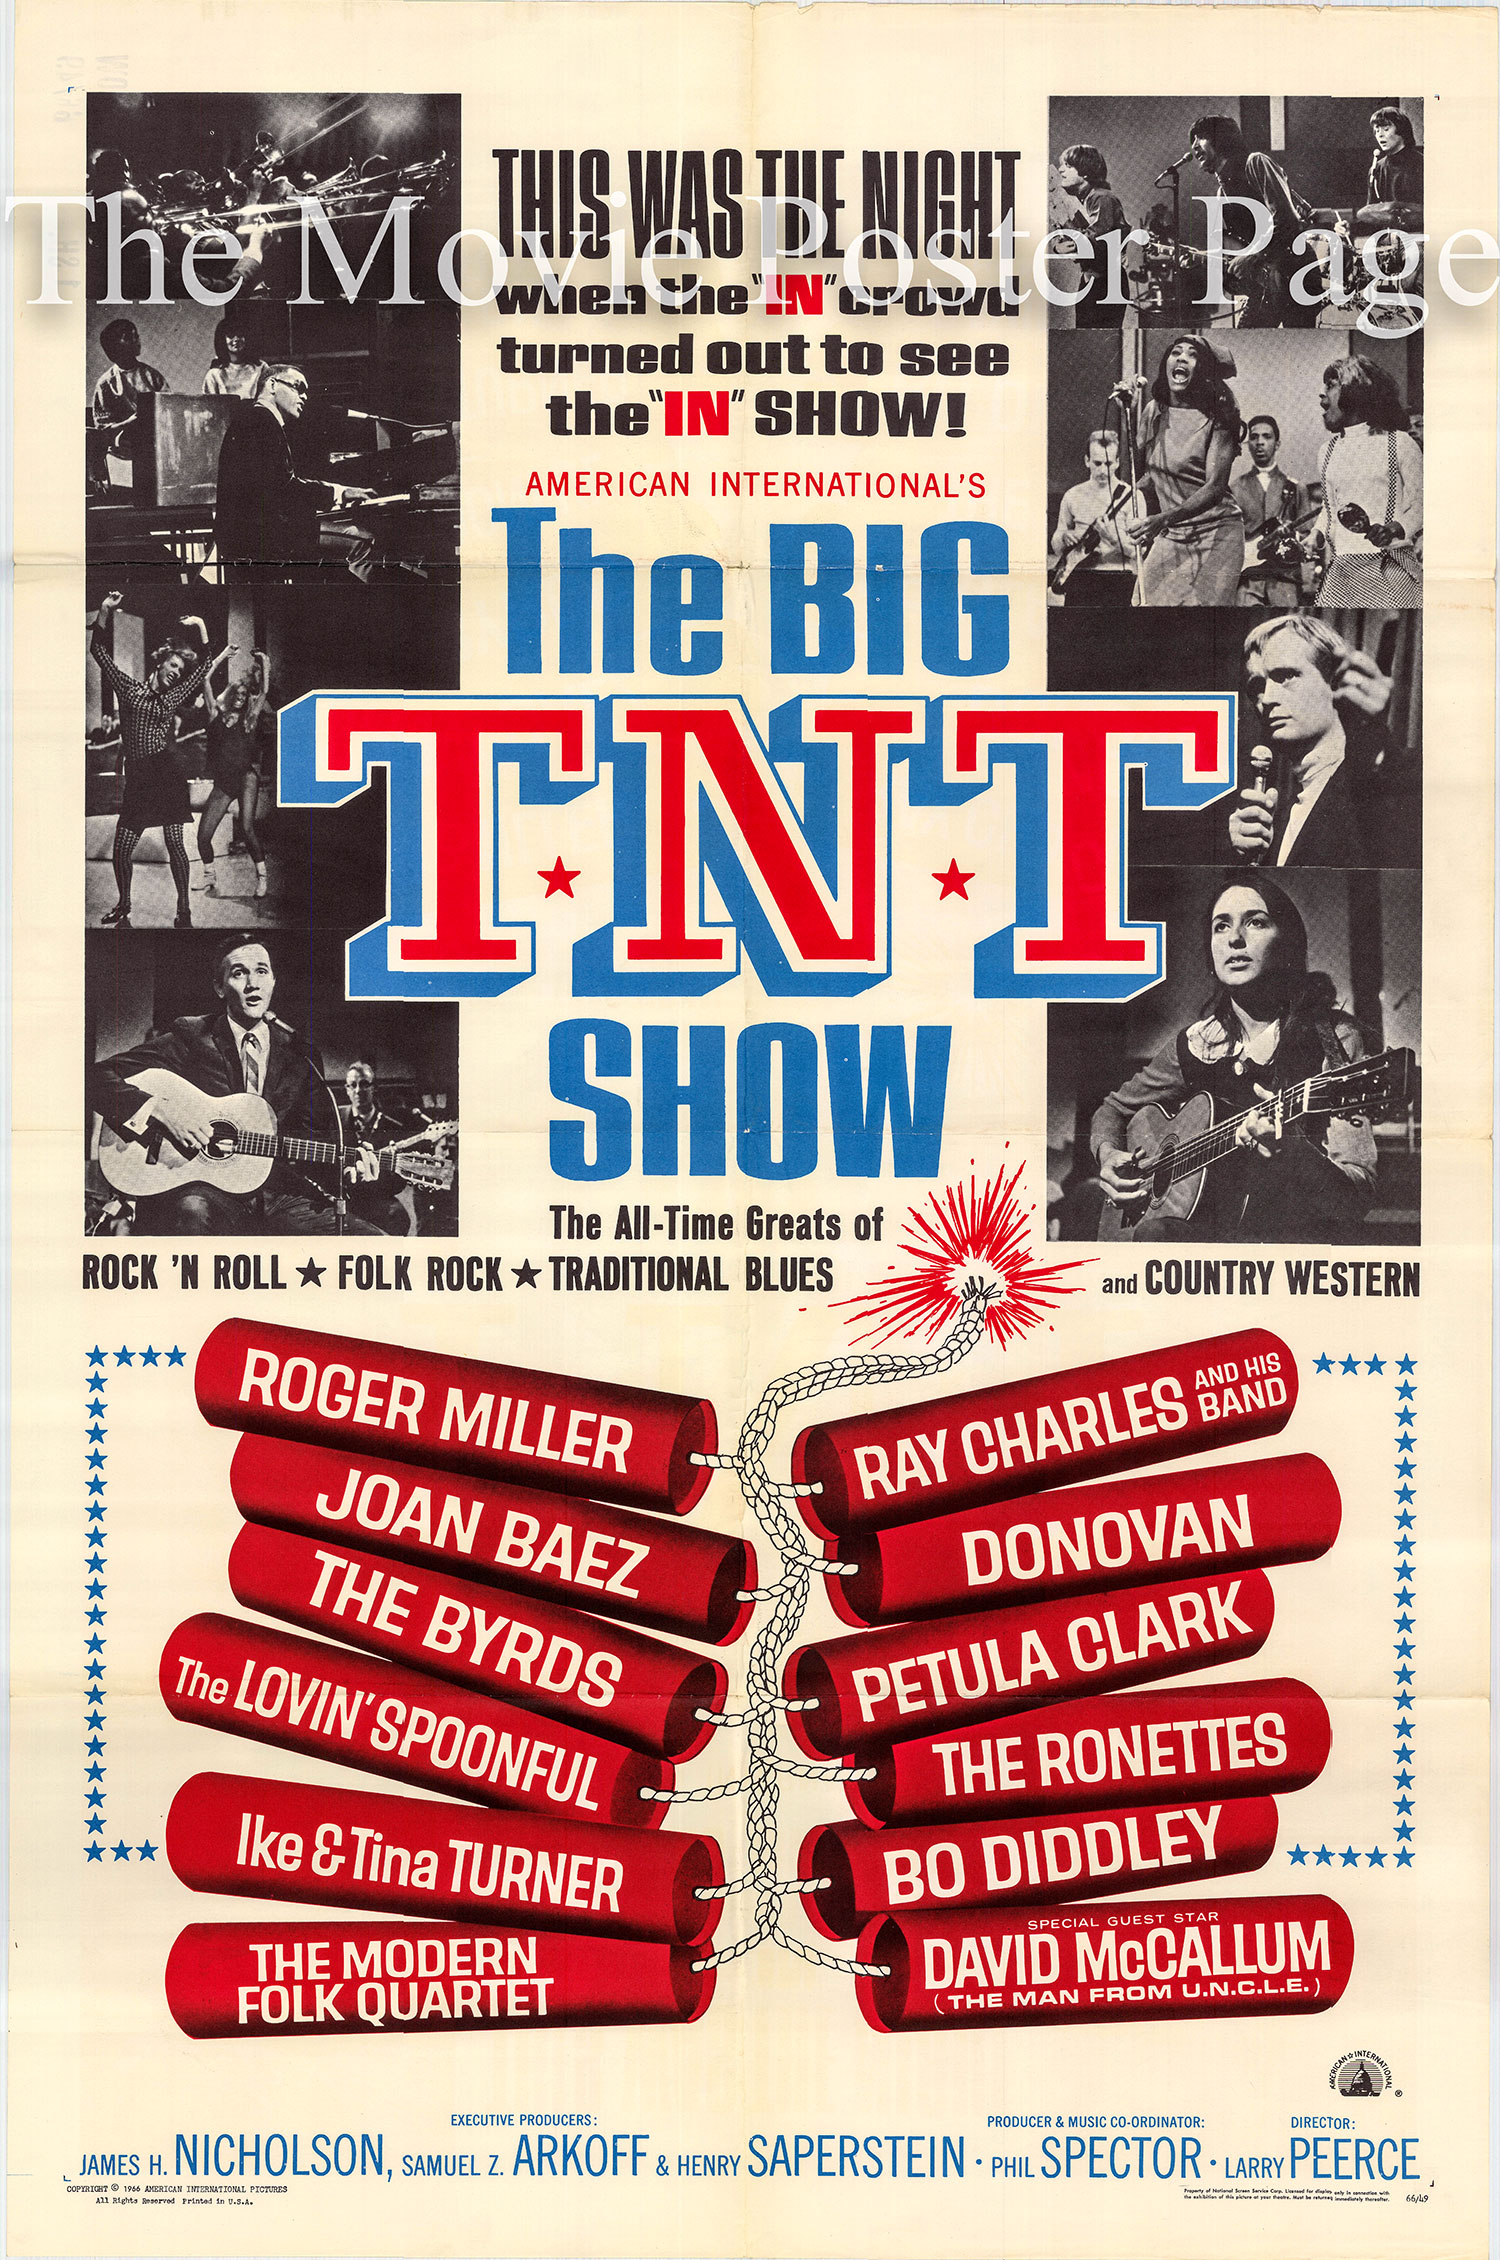 Pictured is a US one-sheet poster for the 1966 Larry Peerce rock concert film The Big T.N.T. Show